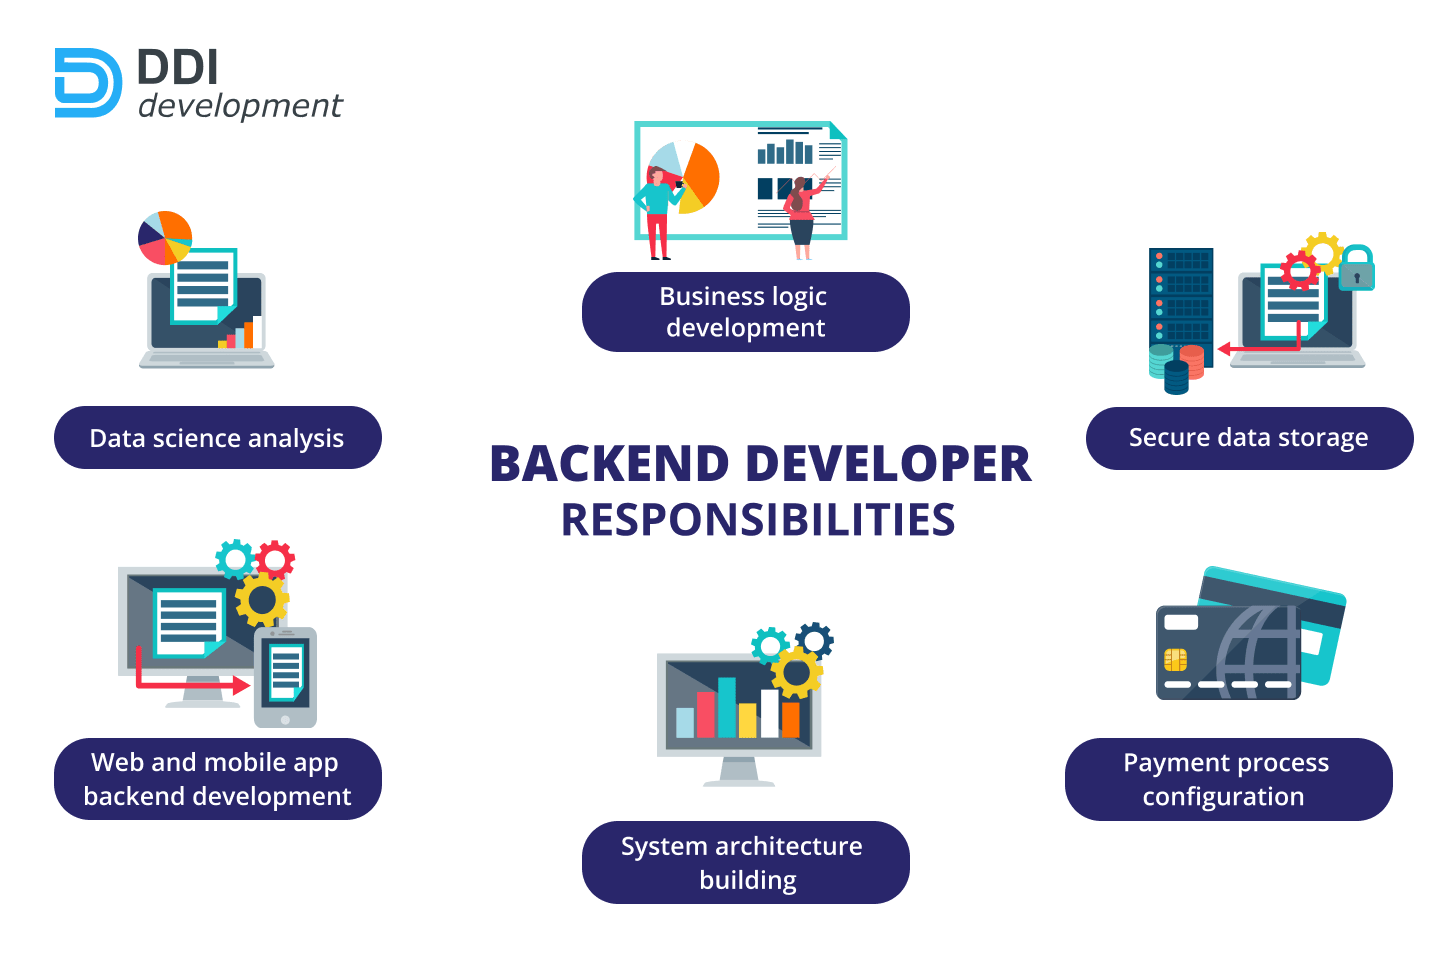 dackend developer responsibilities